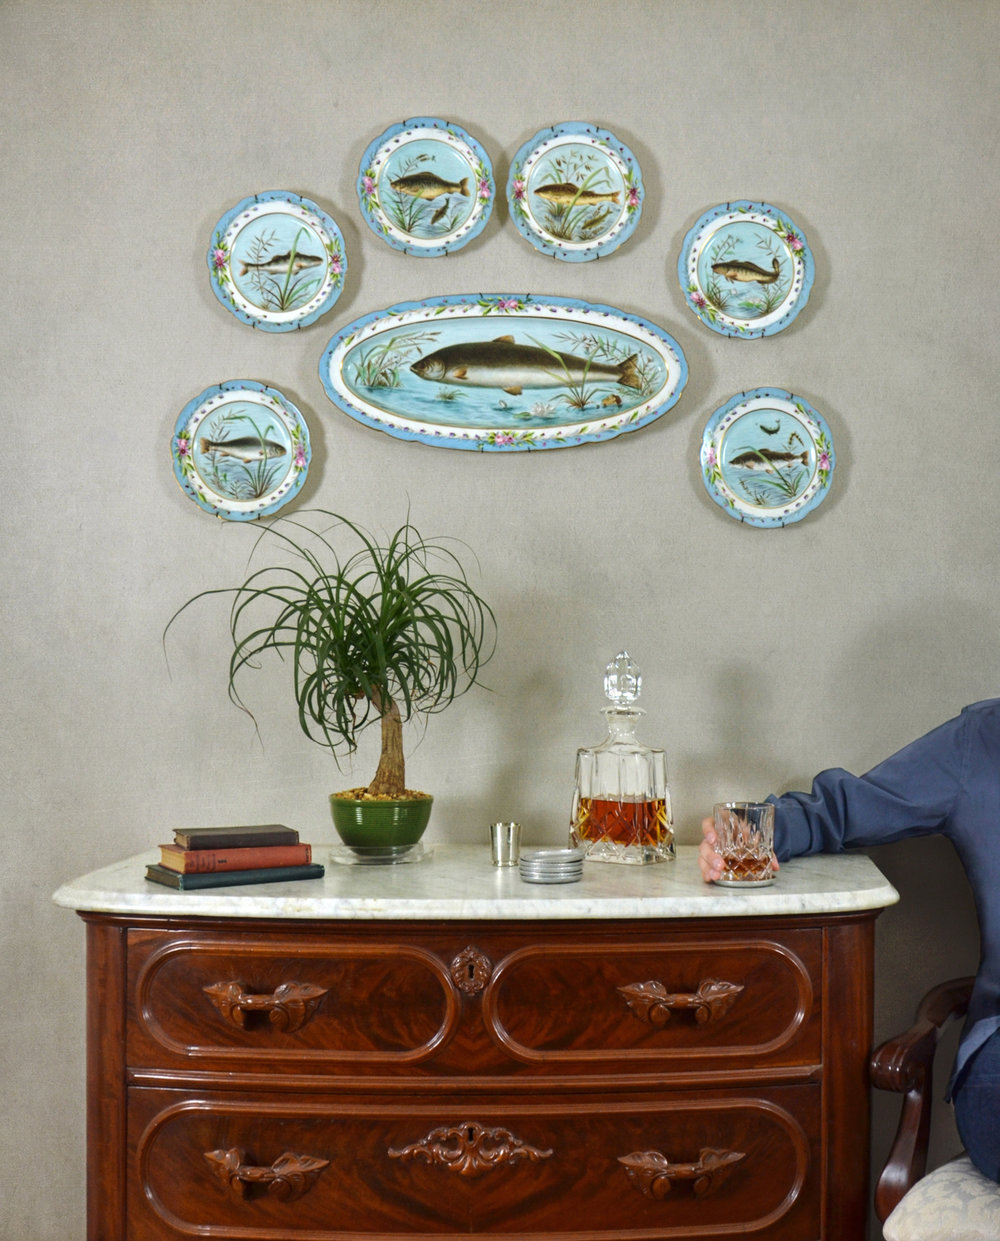 """2018 - Dale Niles, """"Fish Plates and Bourbon""""From the exhibition Rachel Reese Selects"""